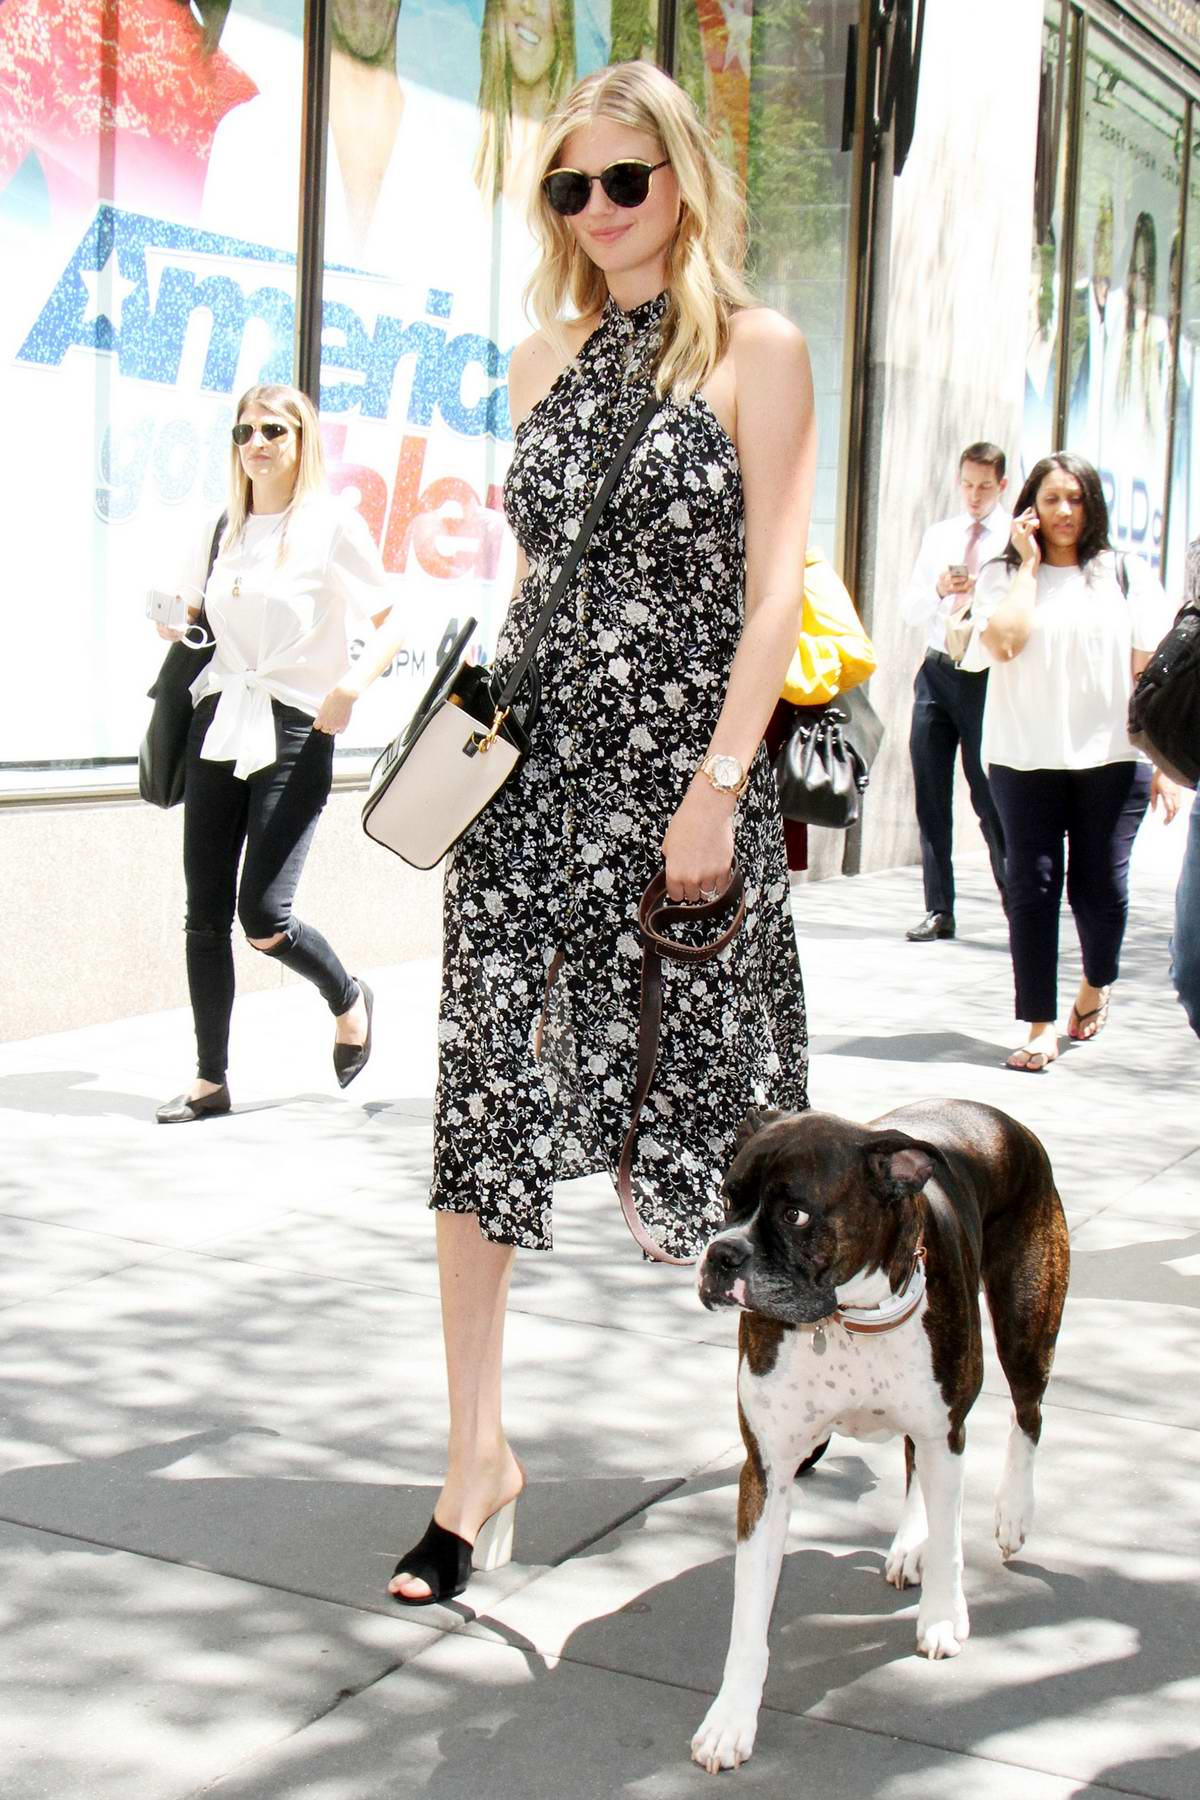 Kate Upton attends Access Hollywood with her Dog in New York